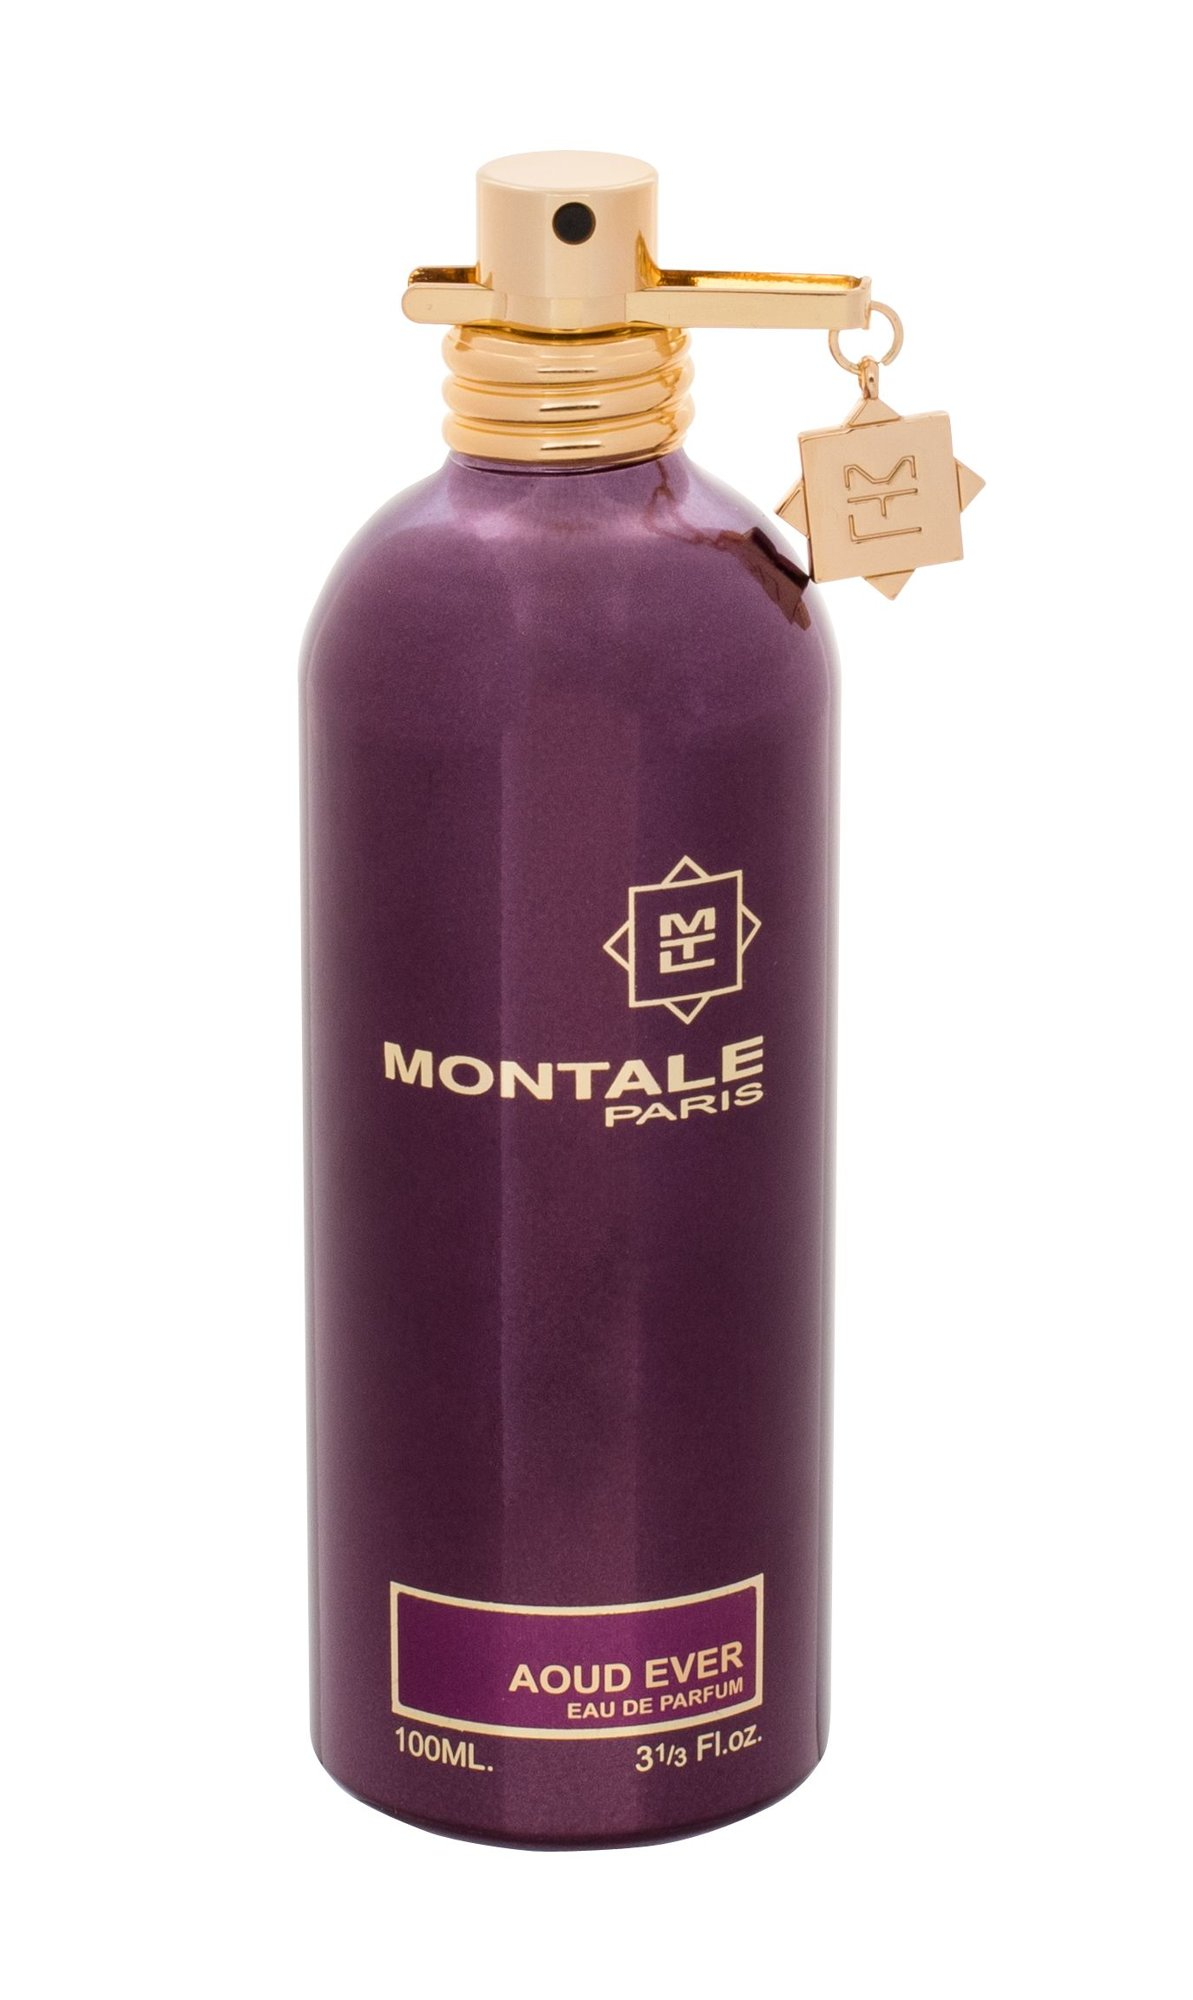 Montale Paris Aoud Ever Eau de Parfum 100ml